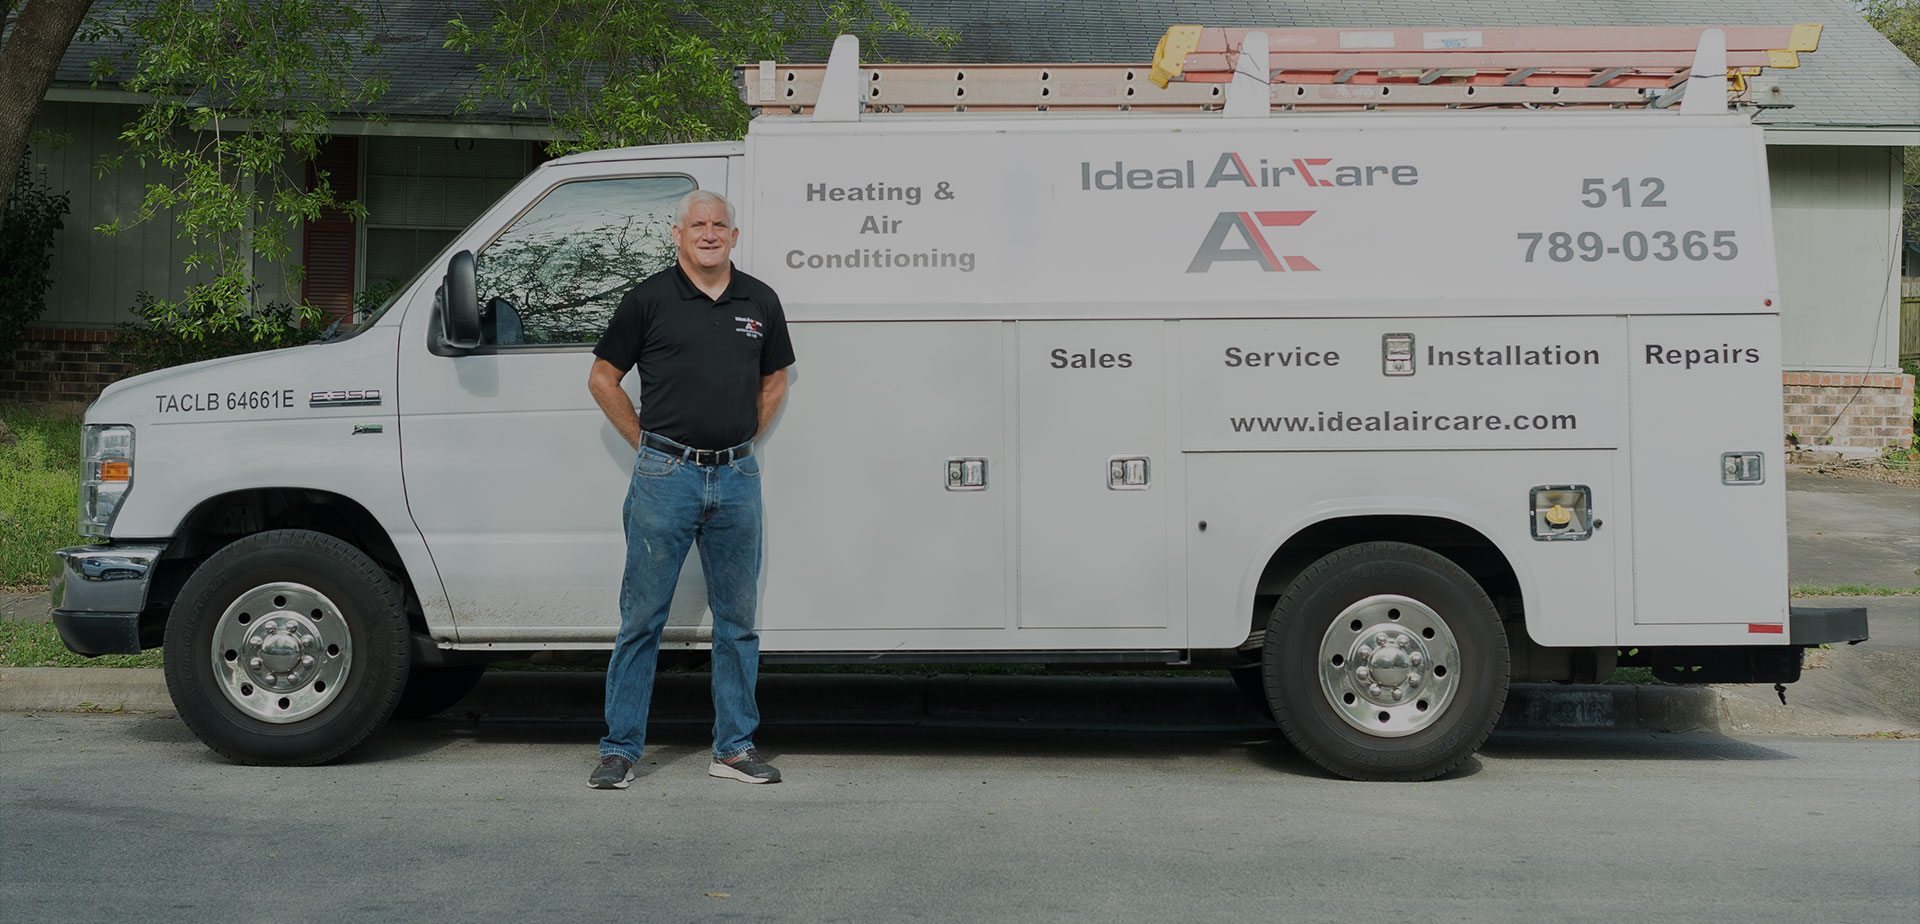 Ideal AirCare